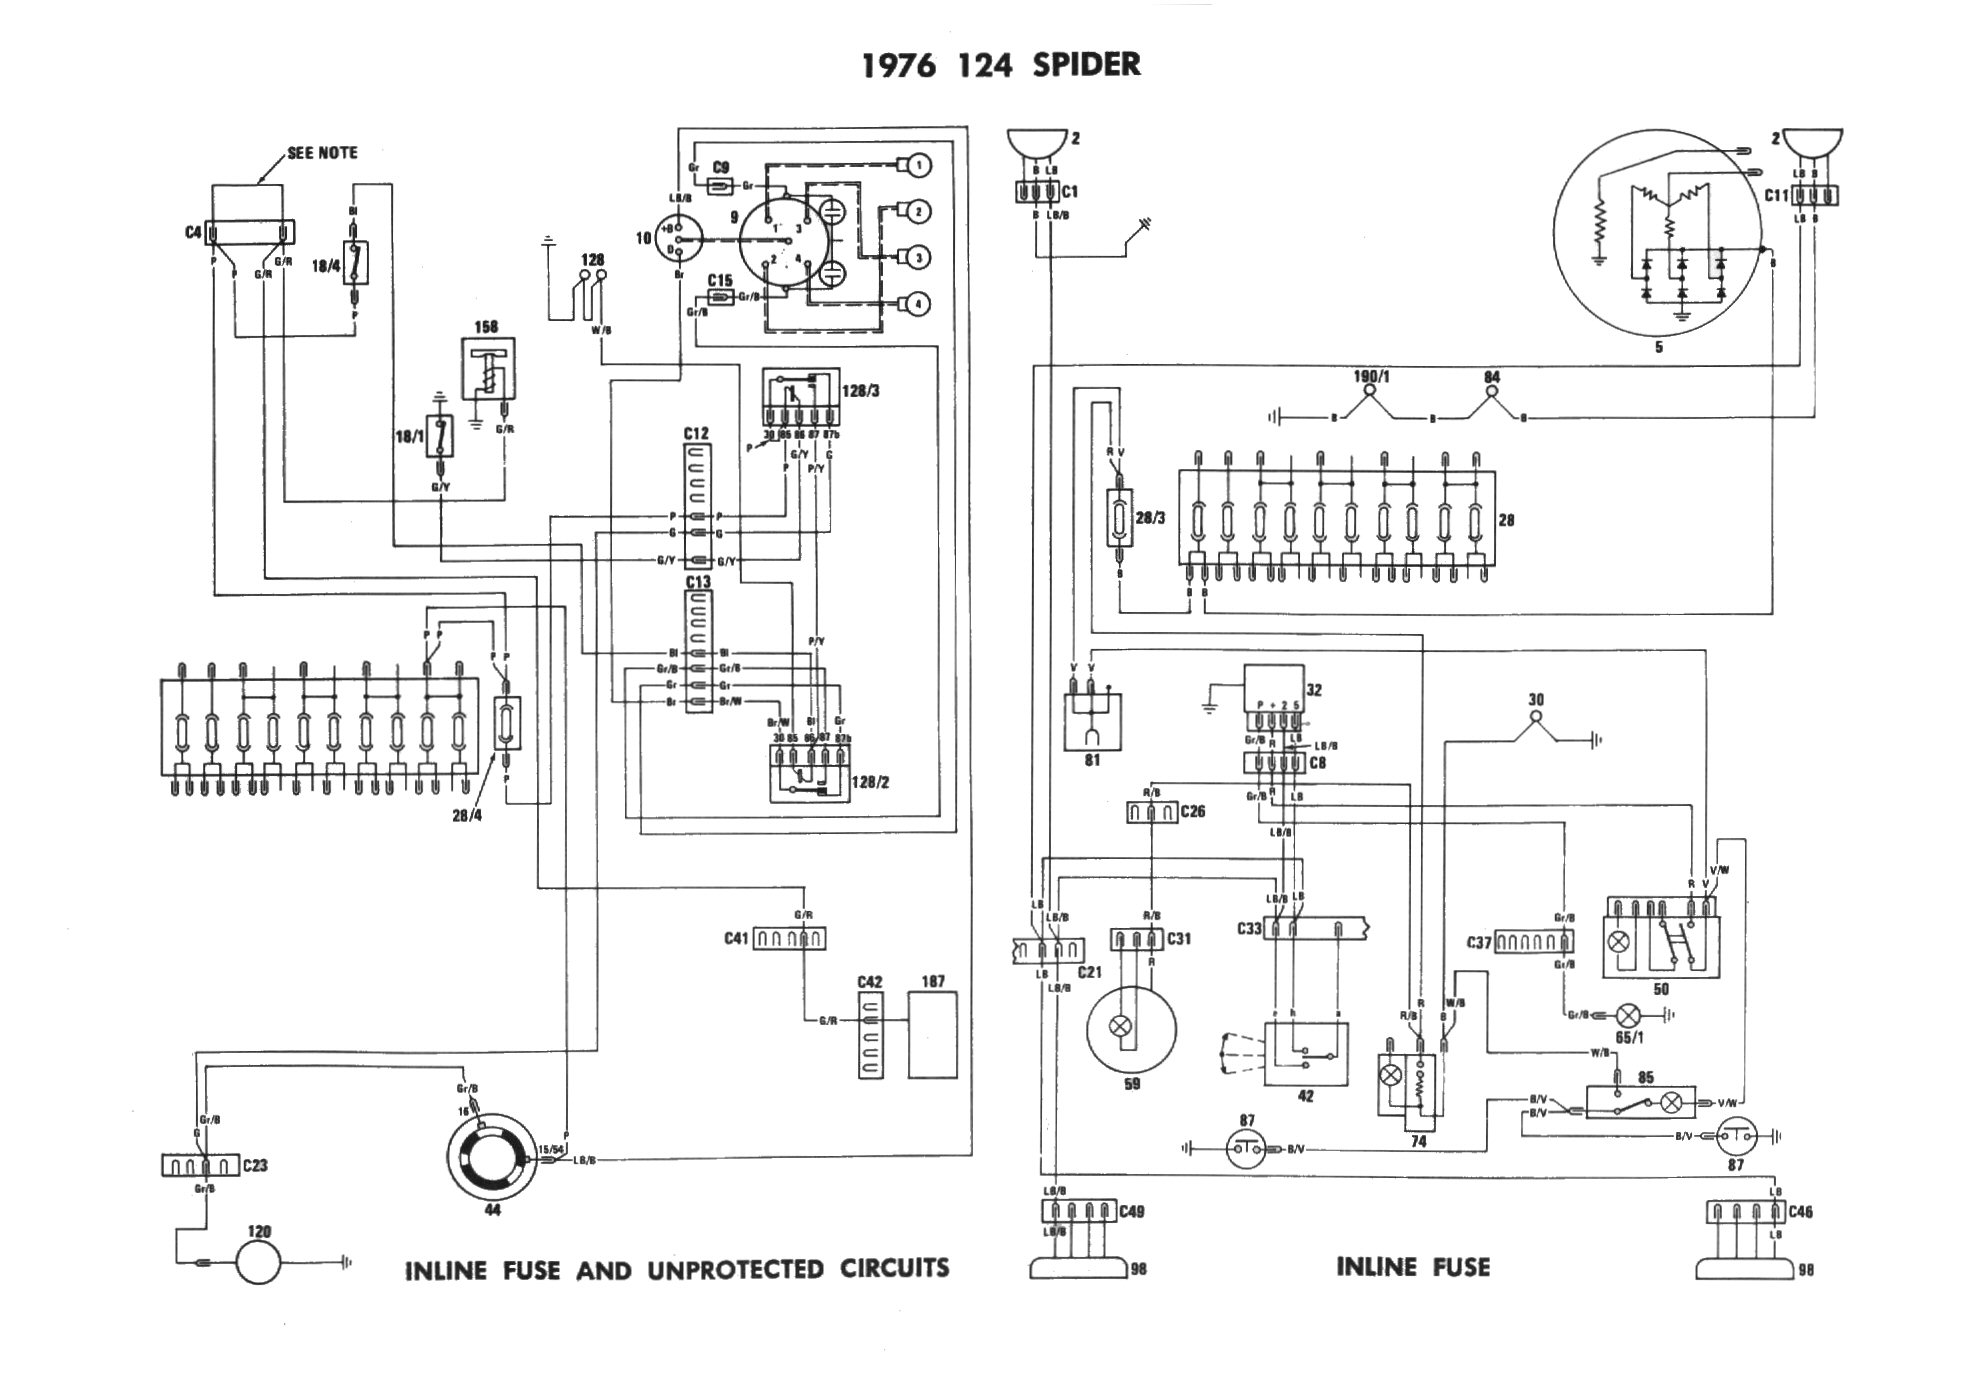 7 fiat 124 spider electrical schemes 1977 fiat spider wiring diagram at eliteediting.co